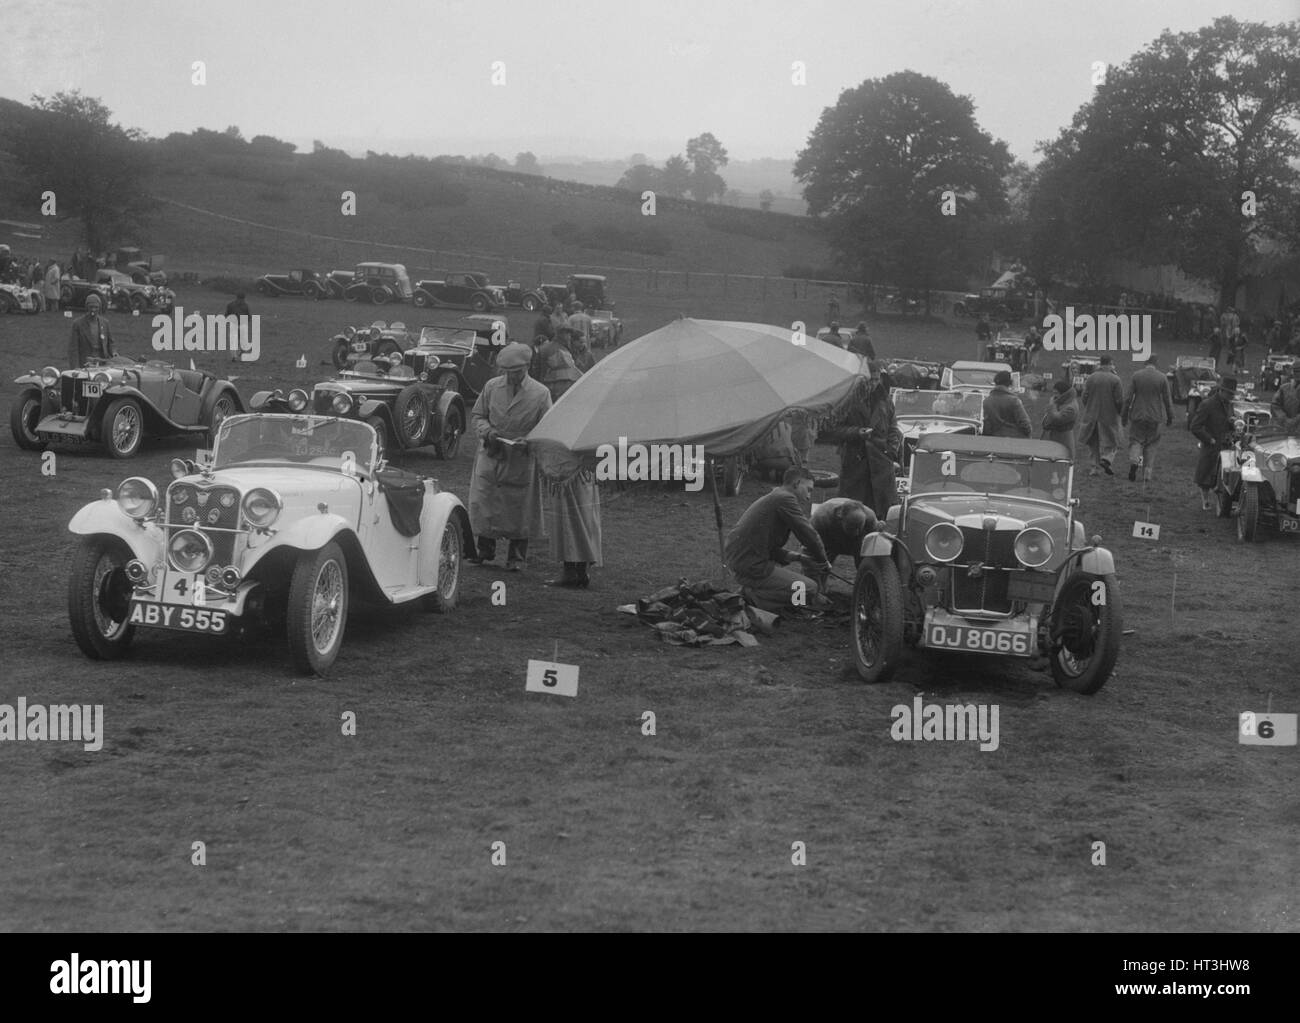 Singer Le Mans and MG J2 at the MG Car Club Rushmere Hillclimb, Shropshire, 1935. Artist: Bill Brunell. - Stock Image